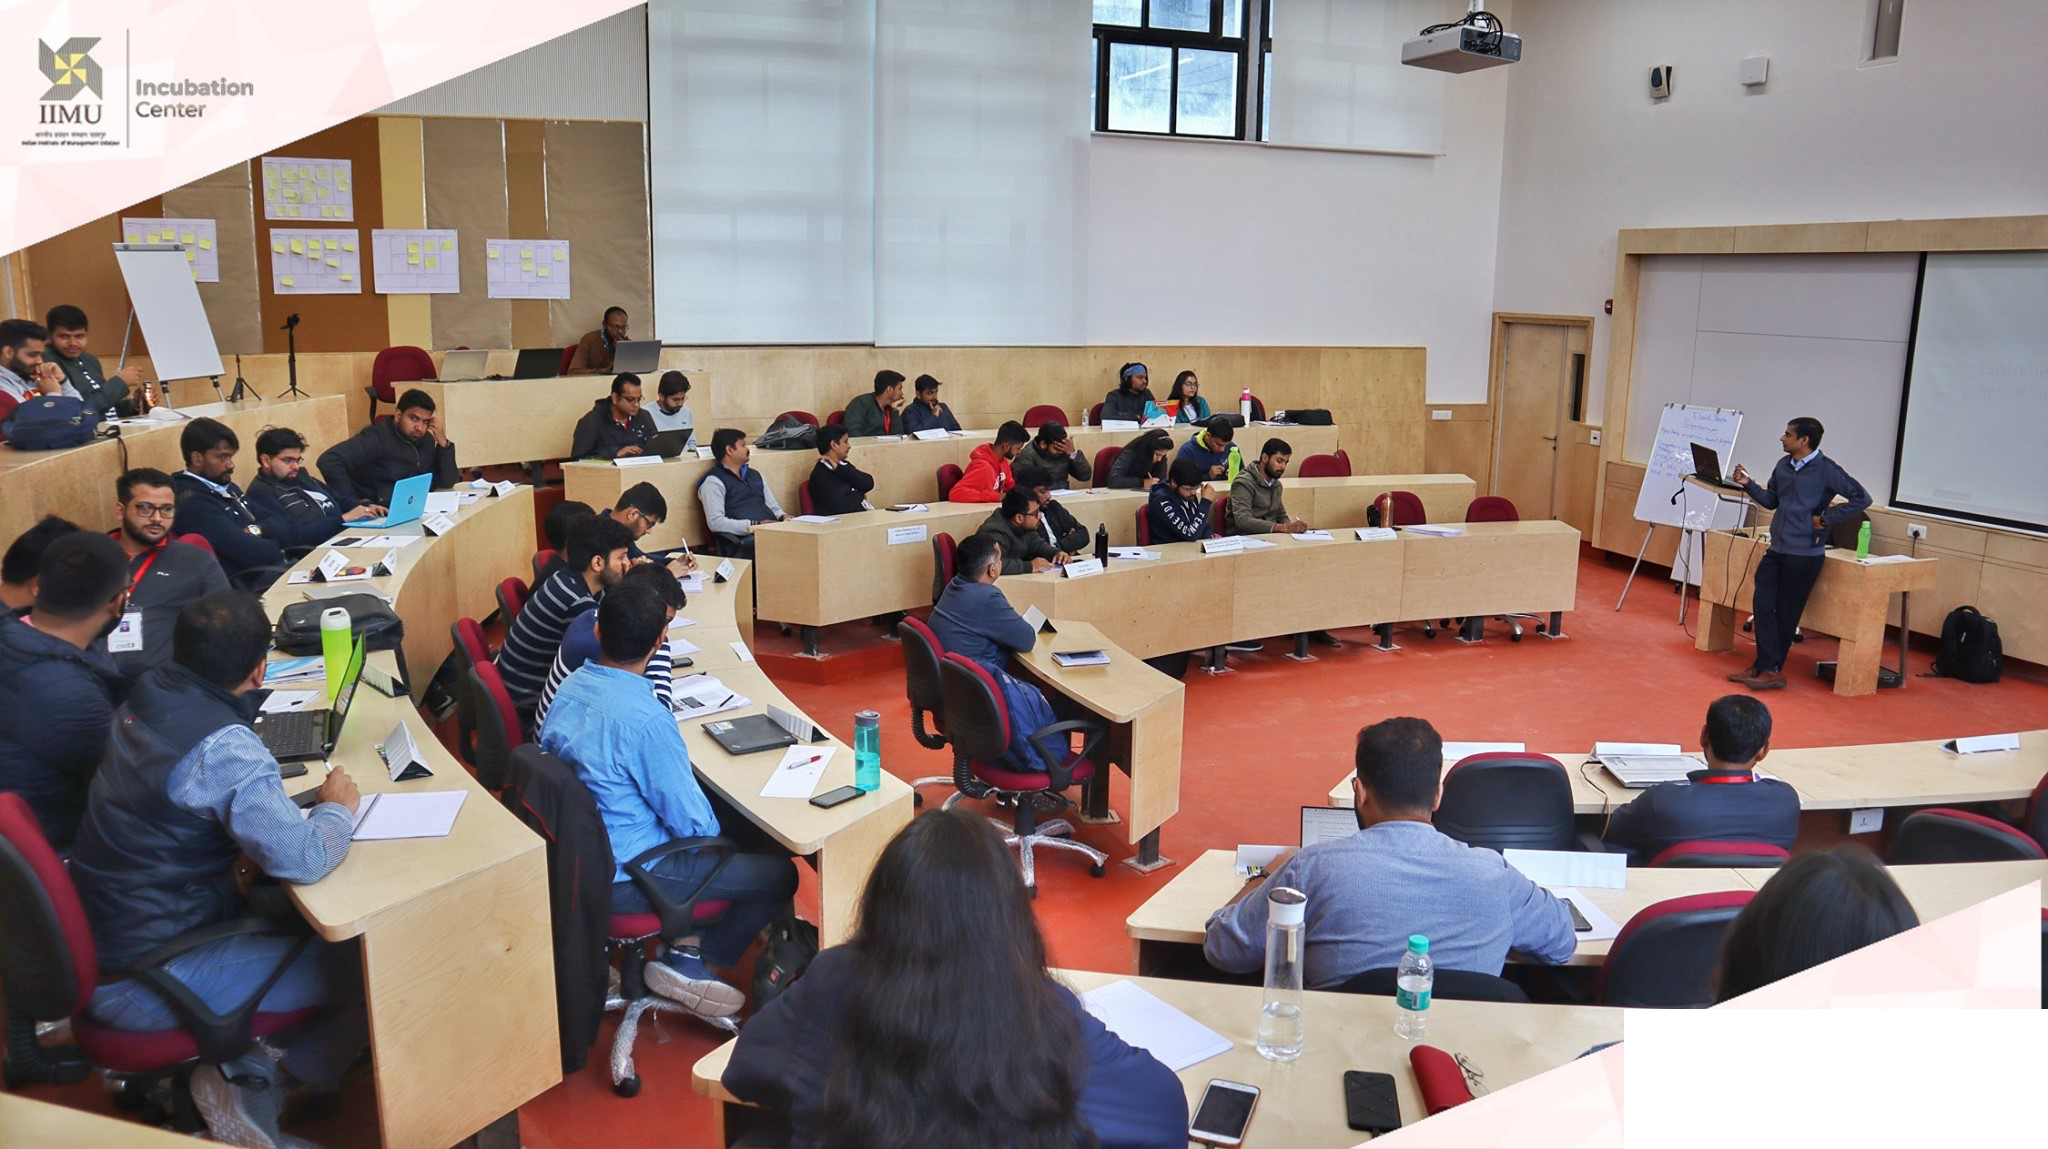 IIM Udaipur Incubation Center Invites AgriTech & FinTech Startups From Across Nation, Doubles the Investment Offerings to 20 lakhs